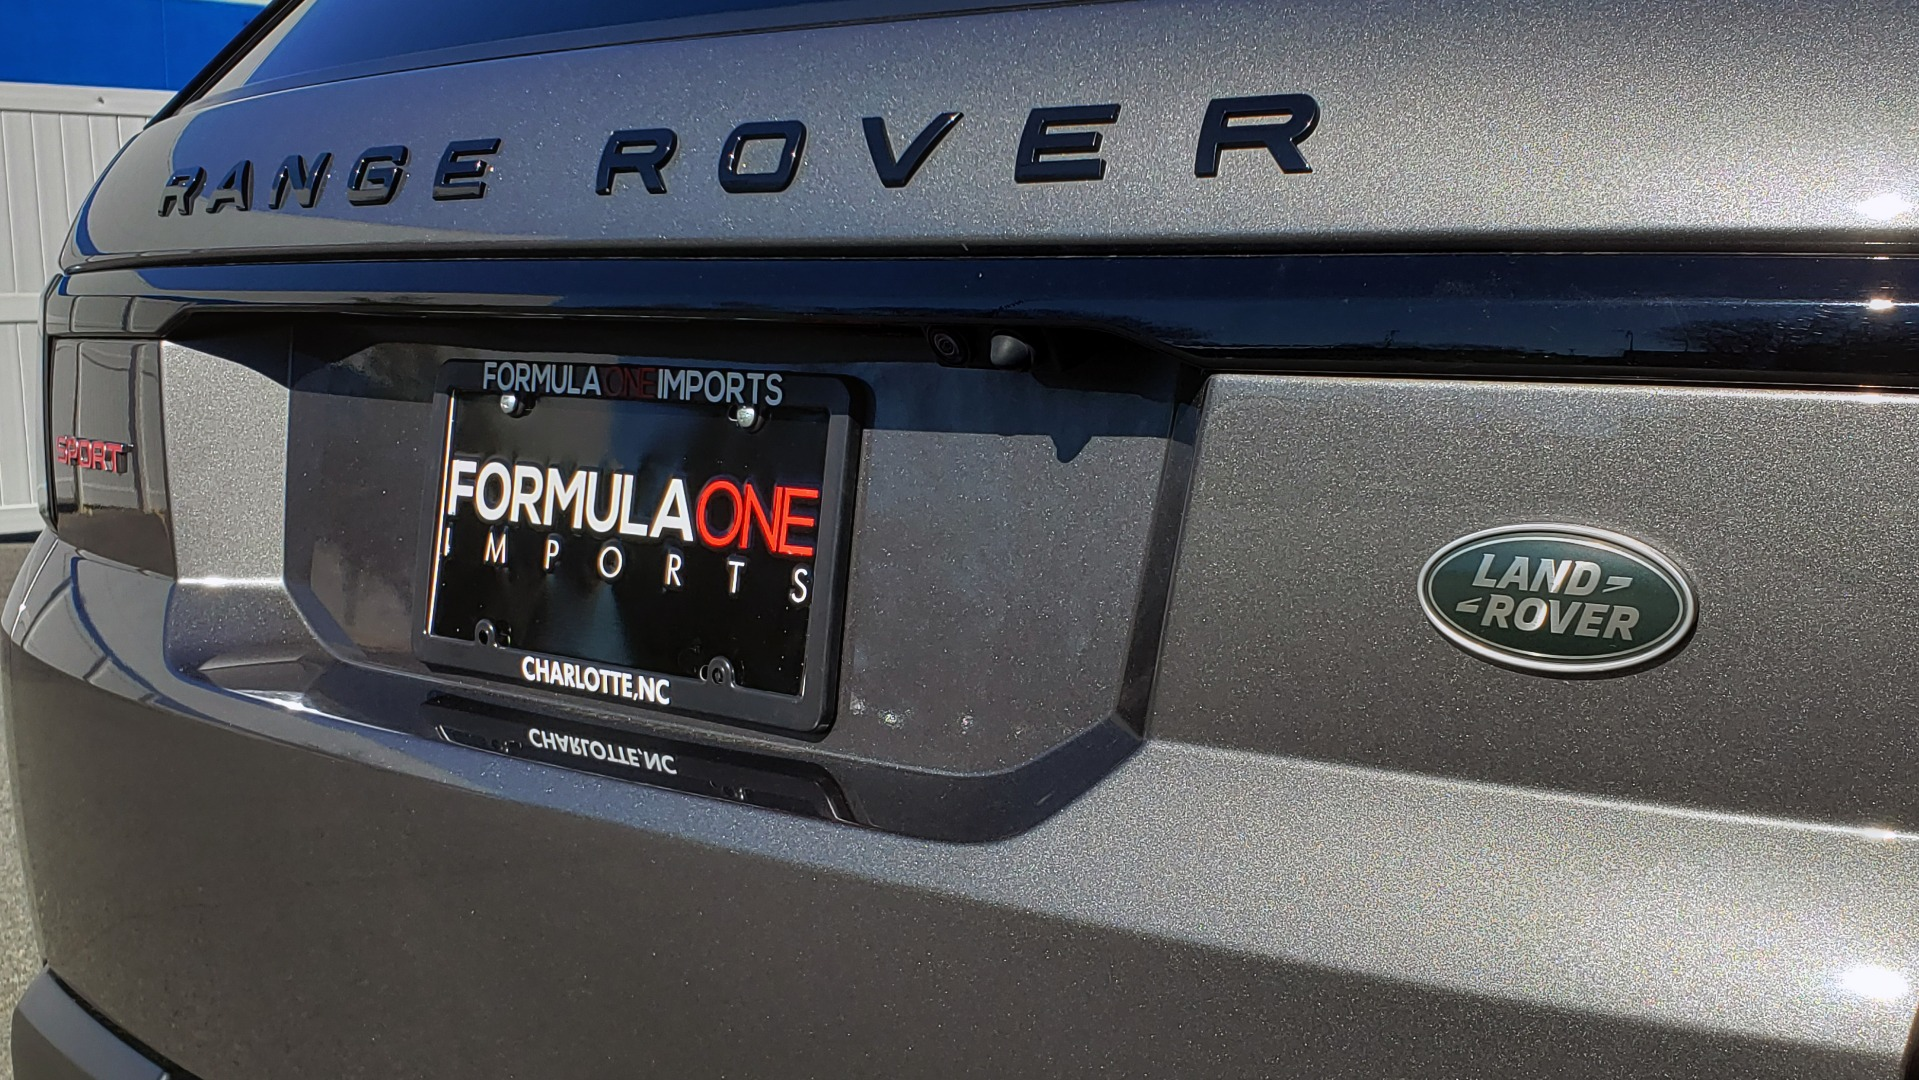 Used 2017 Land Rover RANGE ROVER SPORT HSE DYNAMIC / NAV / SUNROOF / REARVIEW for sale Sold at Formula Imports in Charlotte NC 28227 26